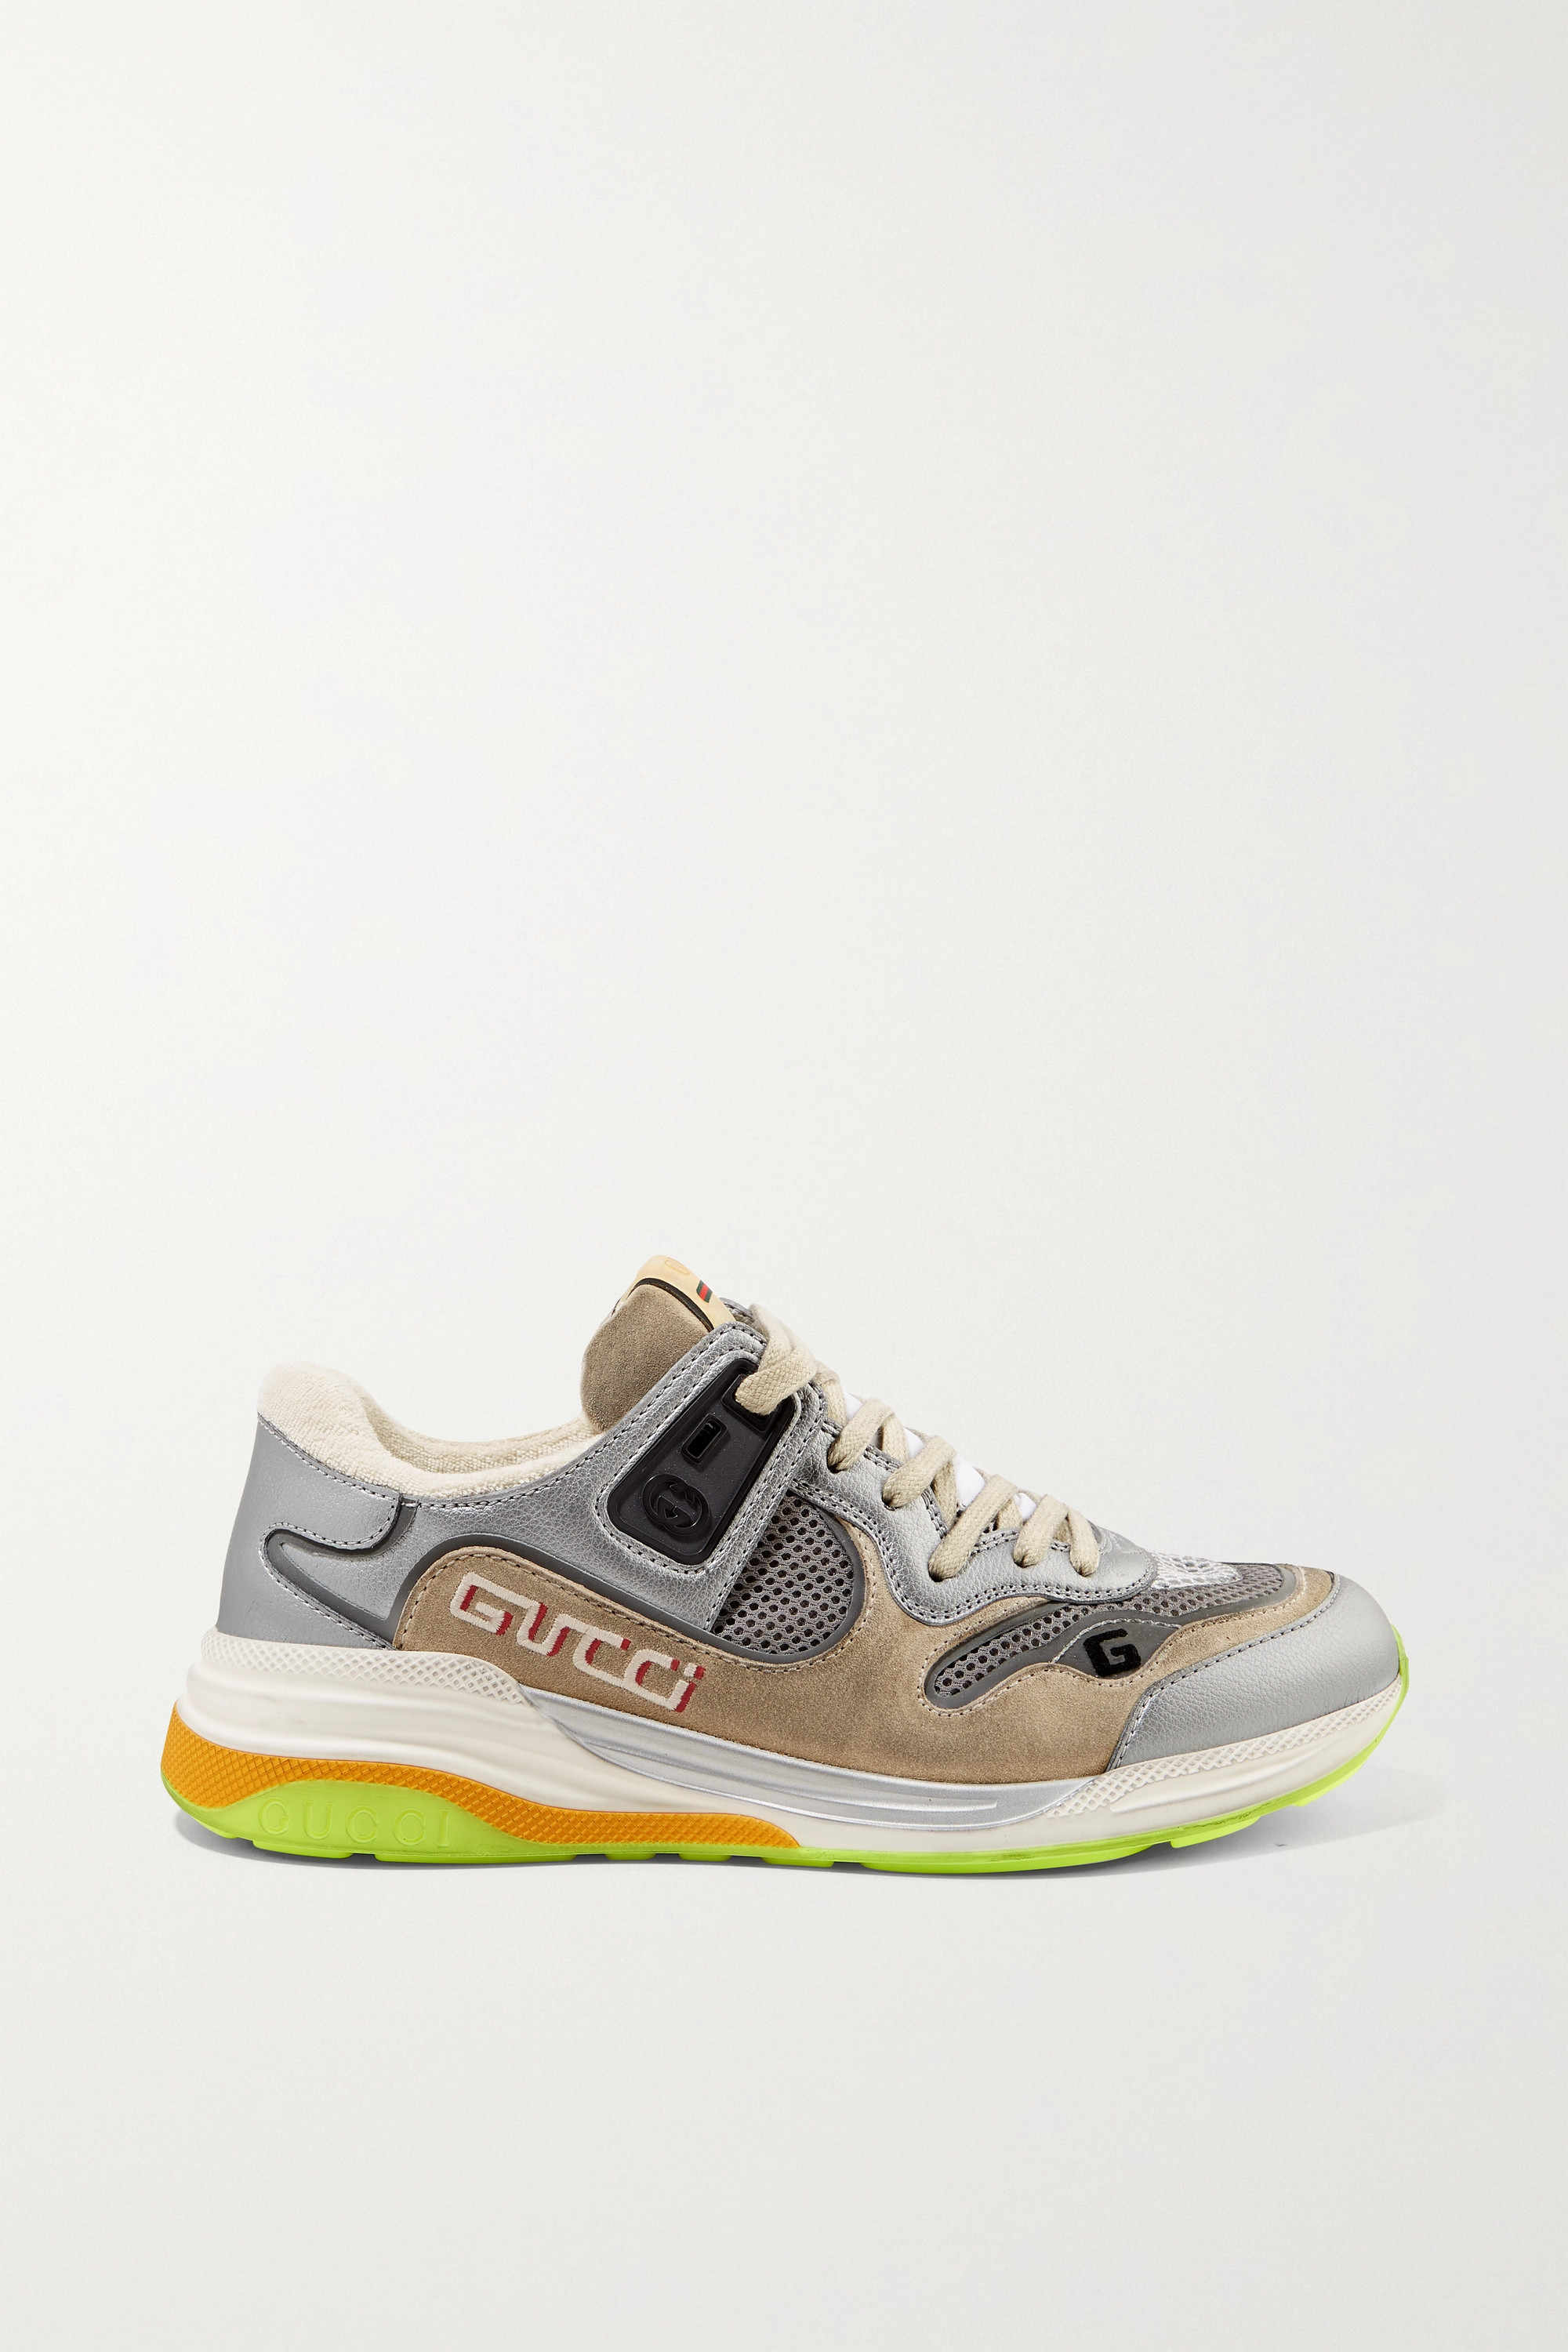 GUCCI Ultrapace metallic leather, mesh and distressed suede sneakers